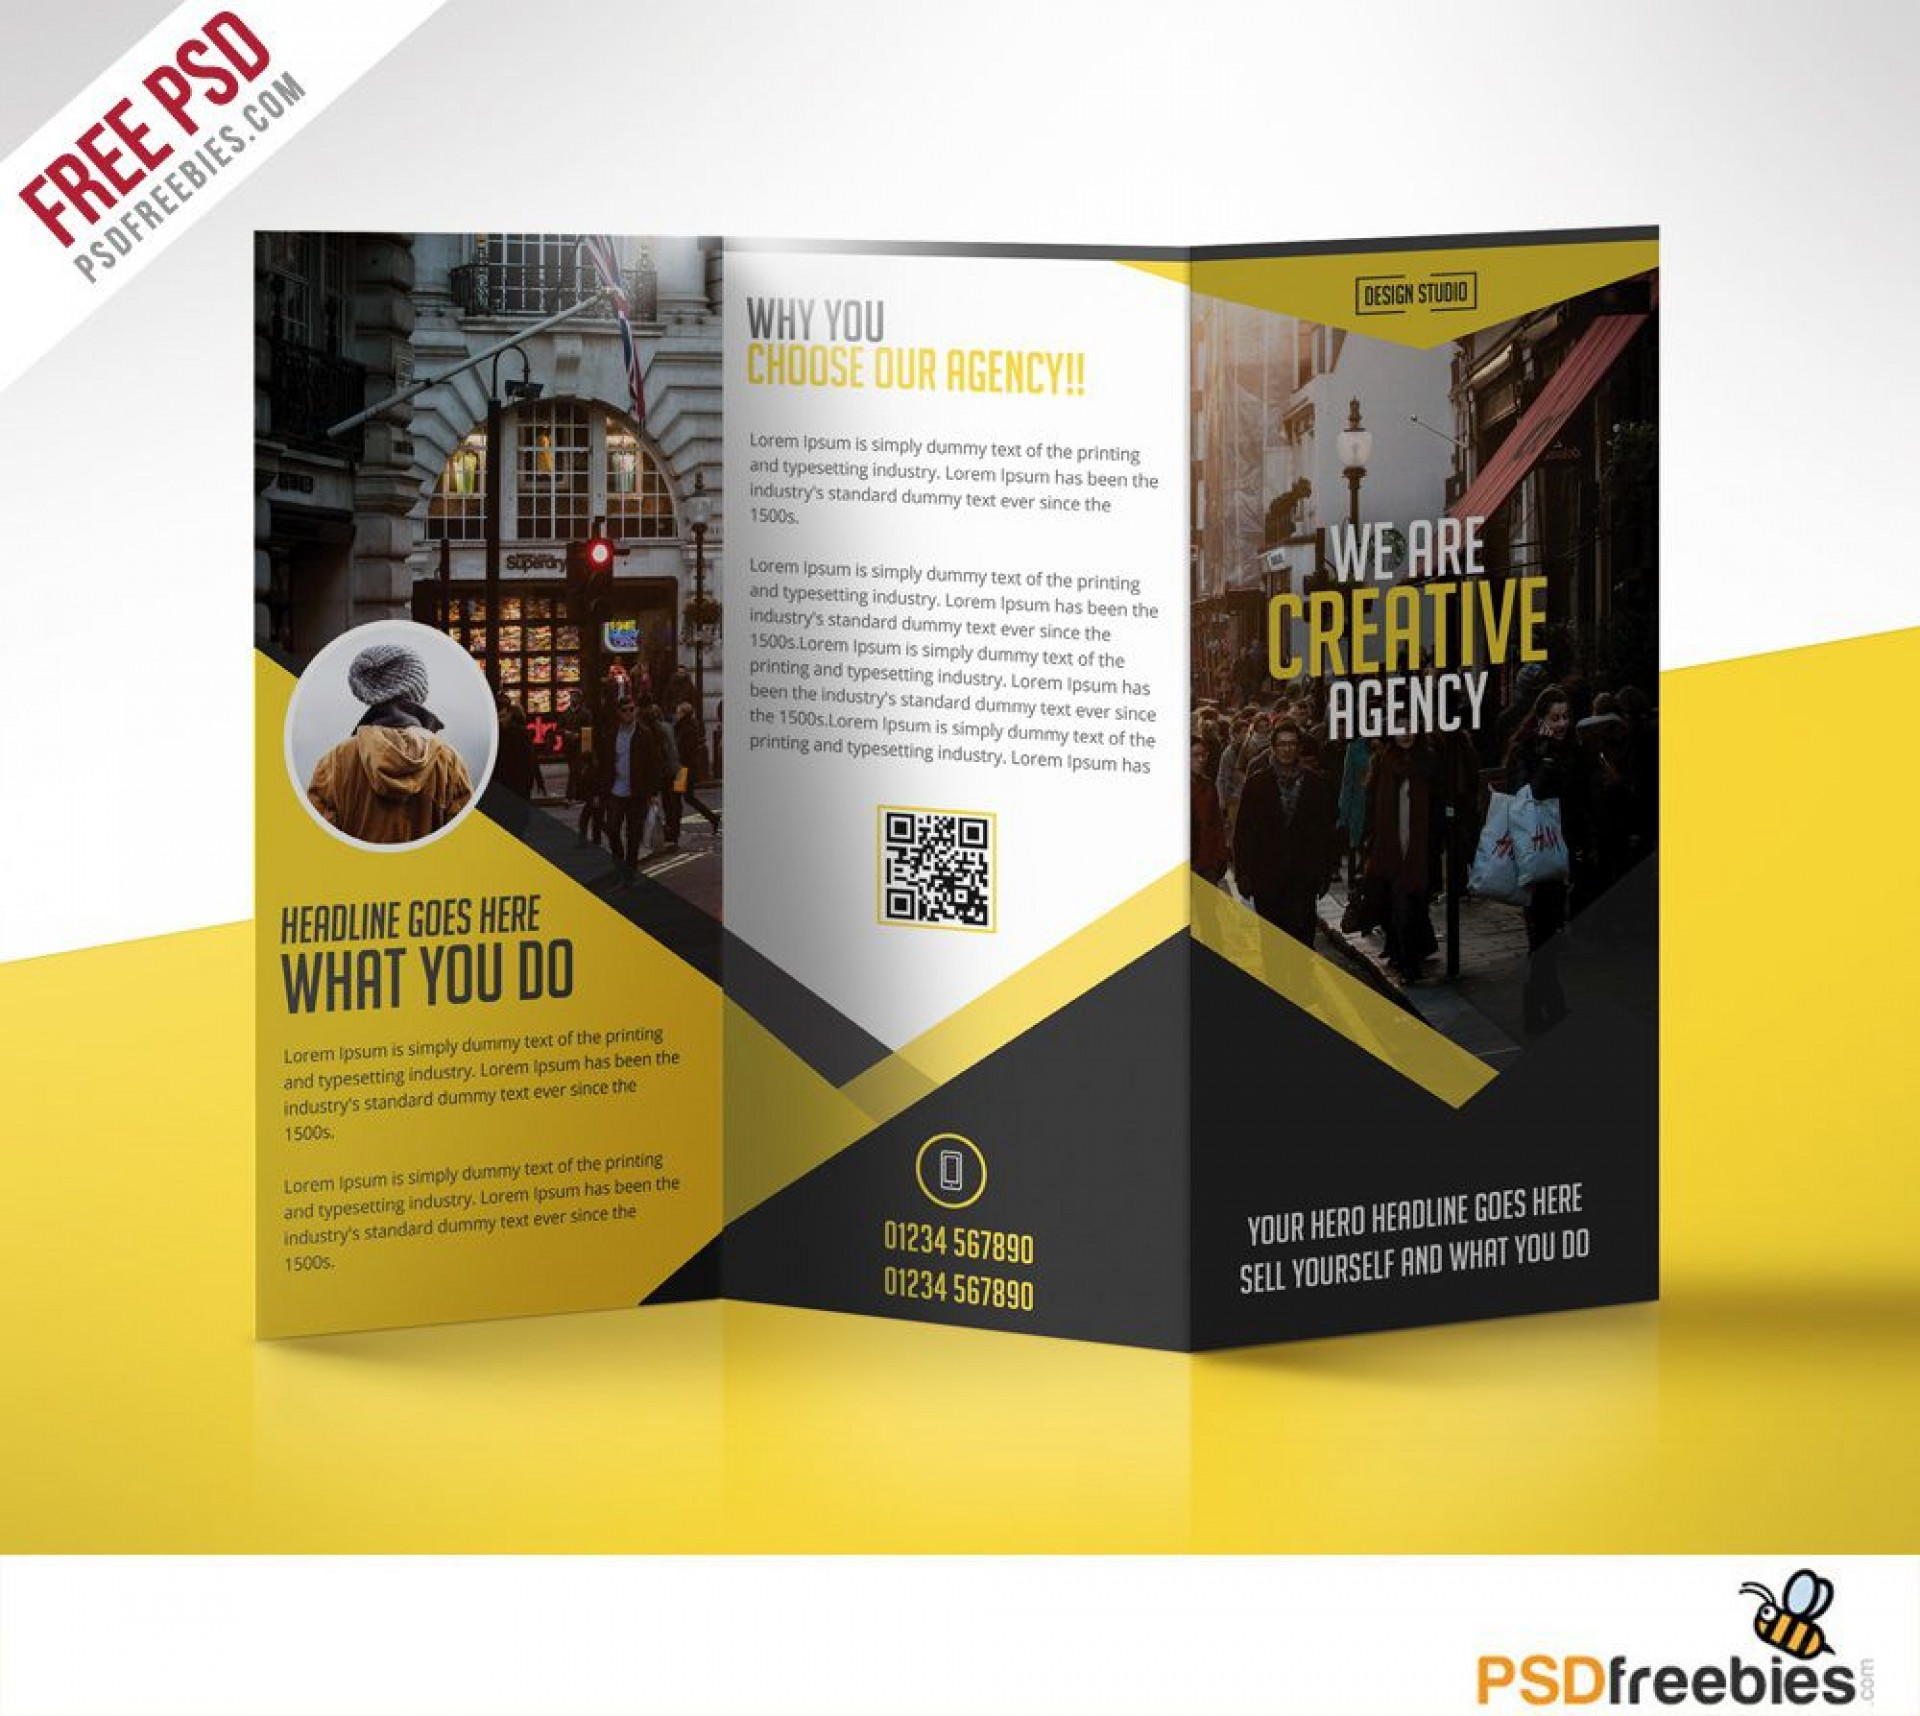 009 Impressive Brochure Template Free Download Inspiration  Microsoft Publisher Corporate Psd For Adobe Illustrator1920